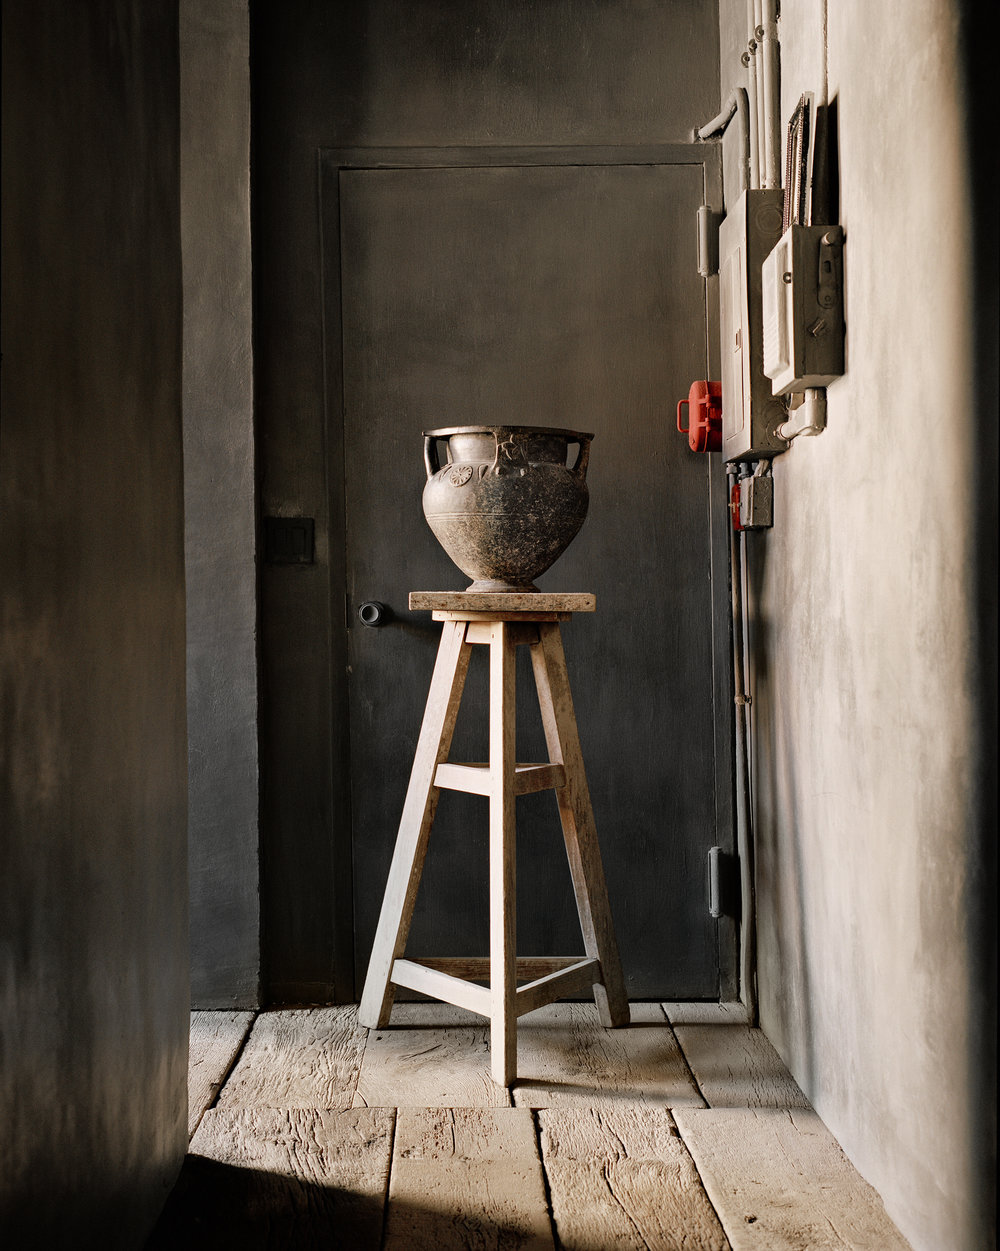 jar on stool.jpg